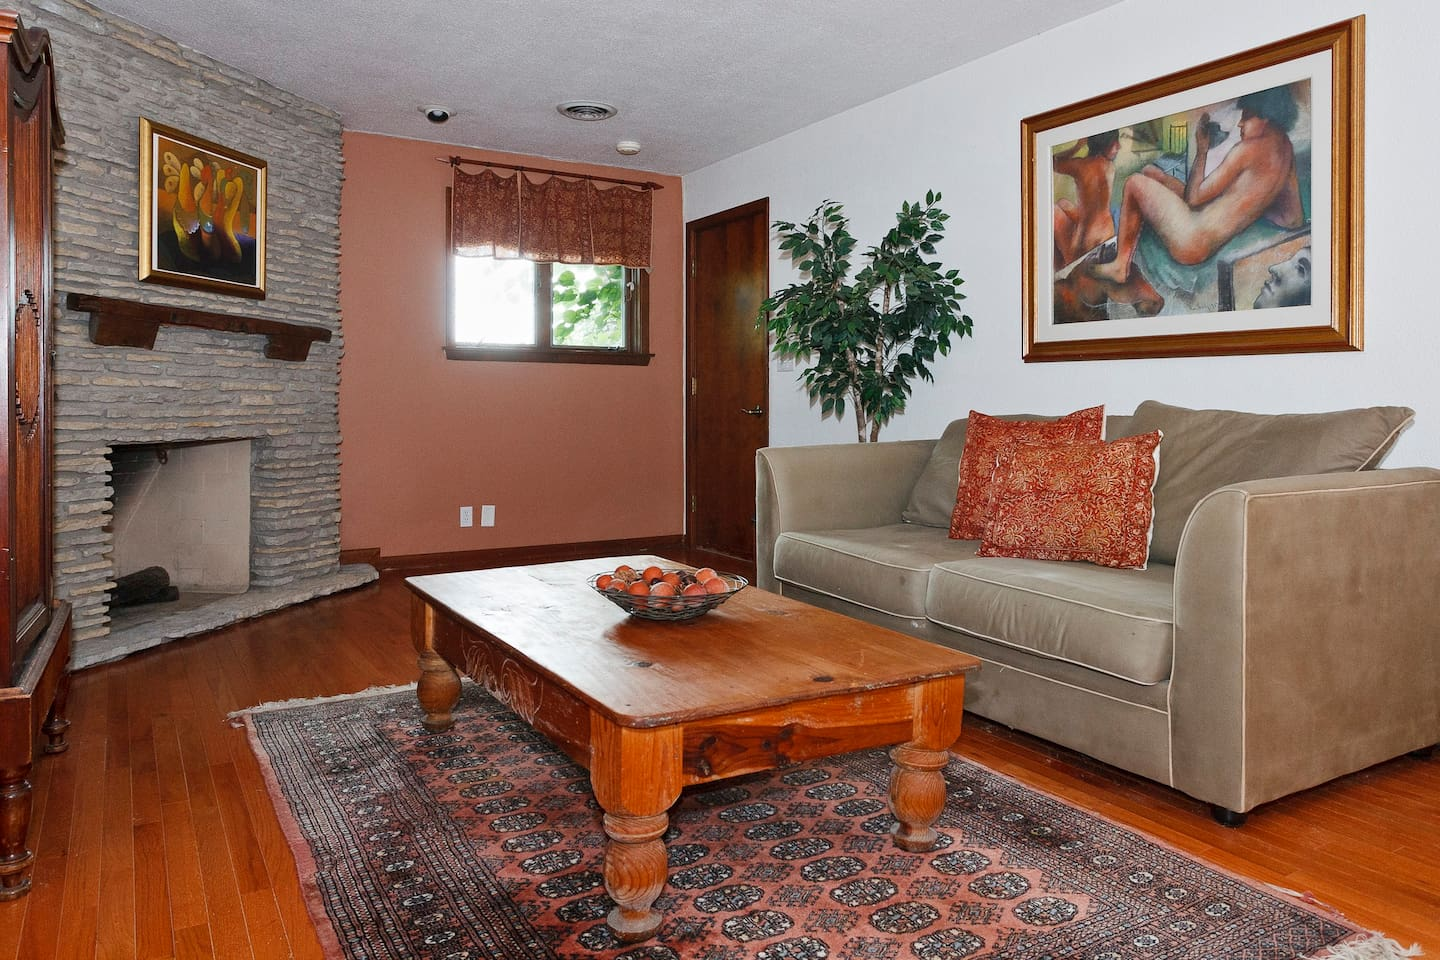 Enjoyable living area,  bed/ beds off to the side of the room, private bathroom.  Beautiful nature backyard.